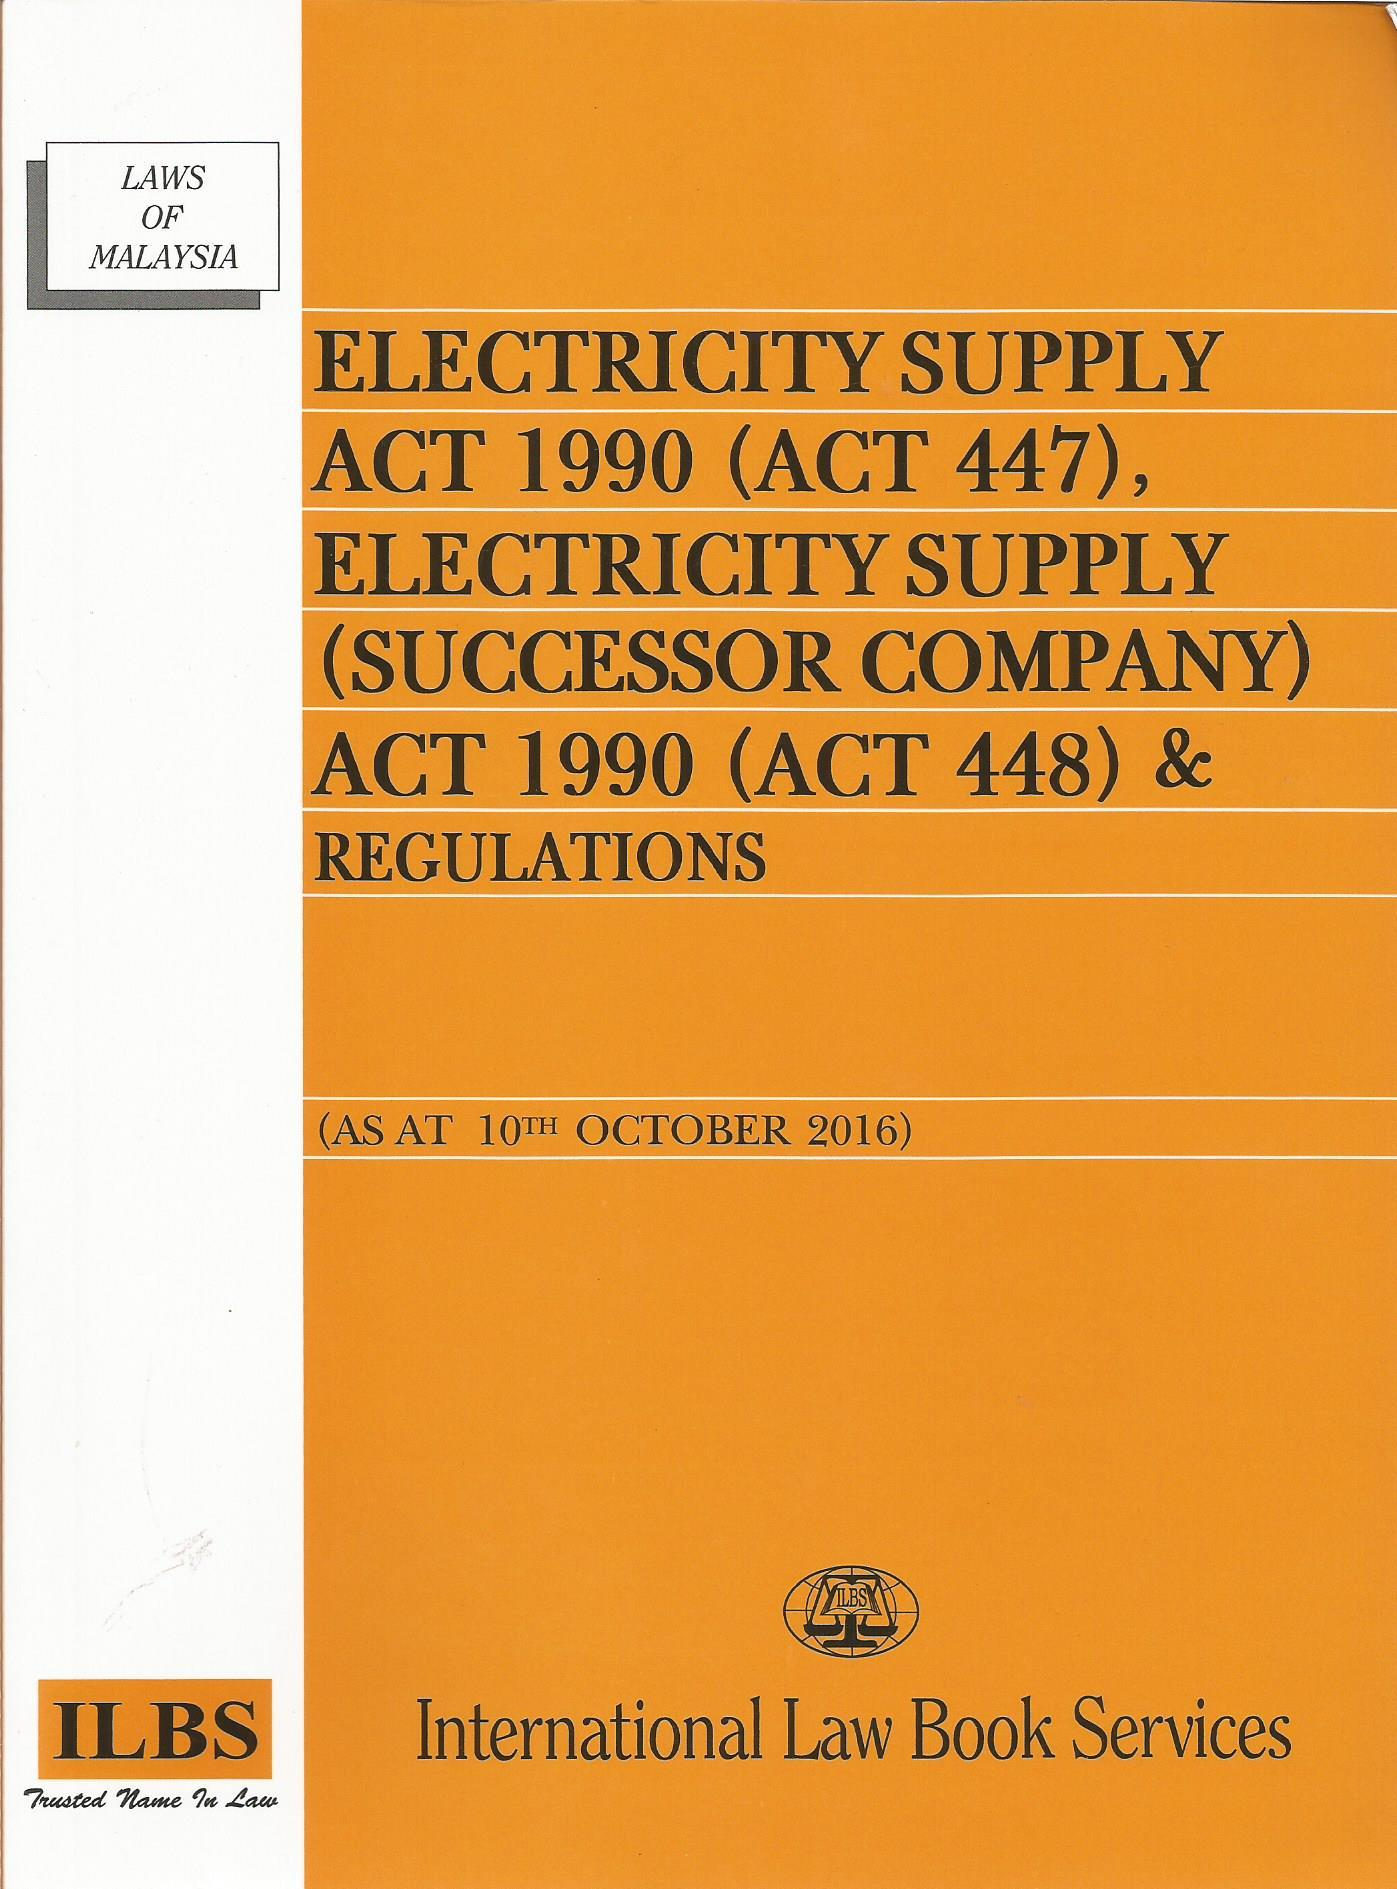 electricity supply act rm 27.5 0.50001.jpg